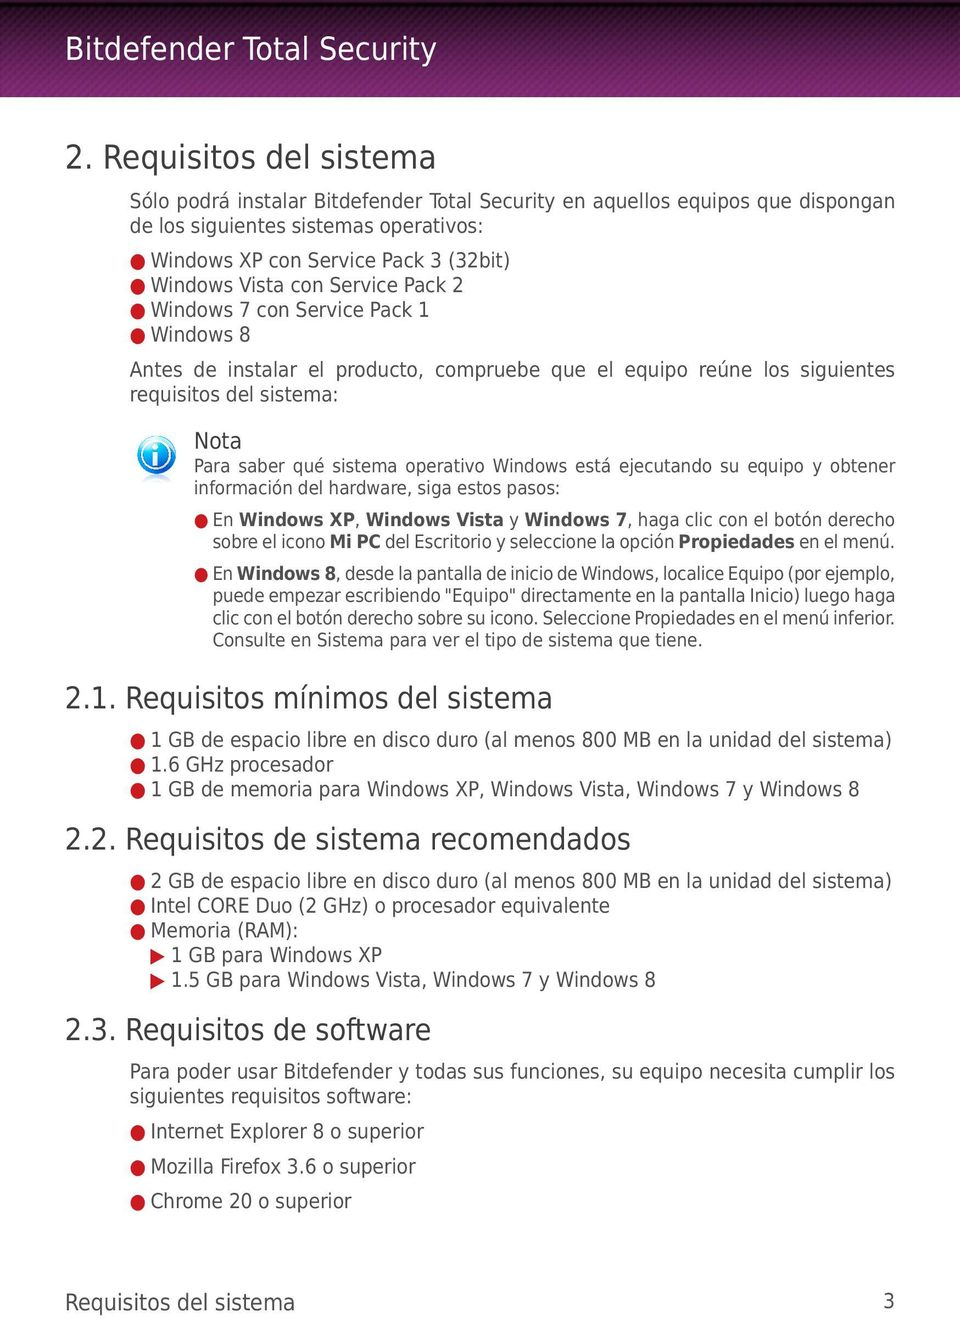 Windows está ejecutando su equipo y obtener información del hardware, siga estos pasos: En Windows XP, Windows Vista y Windows 7, haga clic con el botón derecho sobre el icono Mi PC del Escritorio y